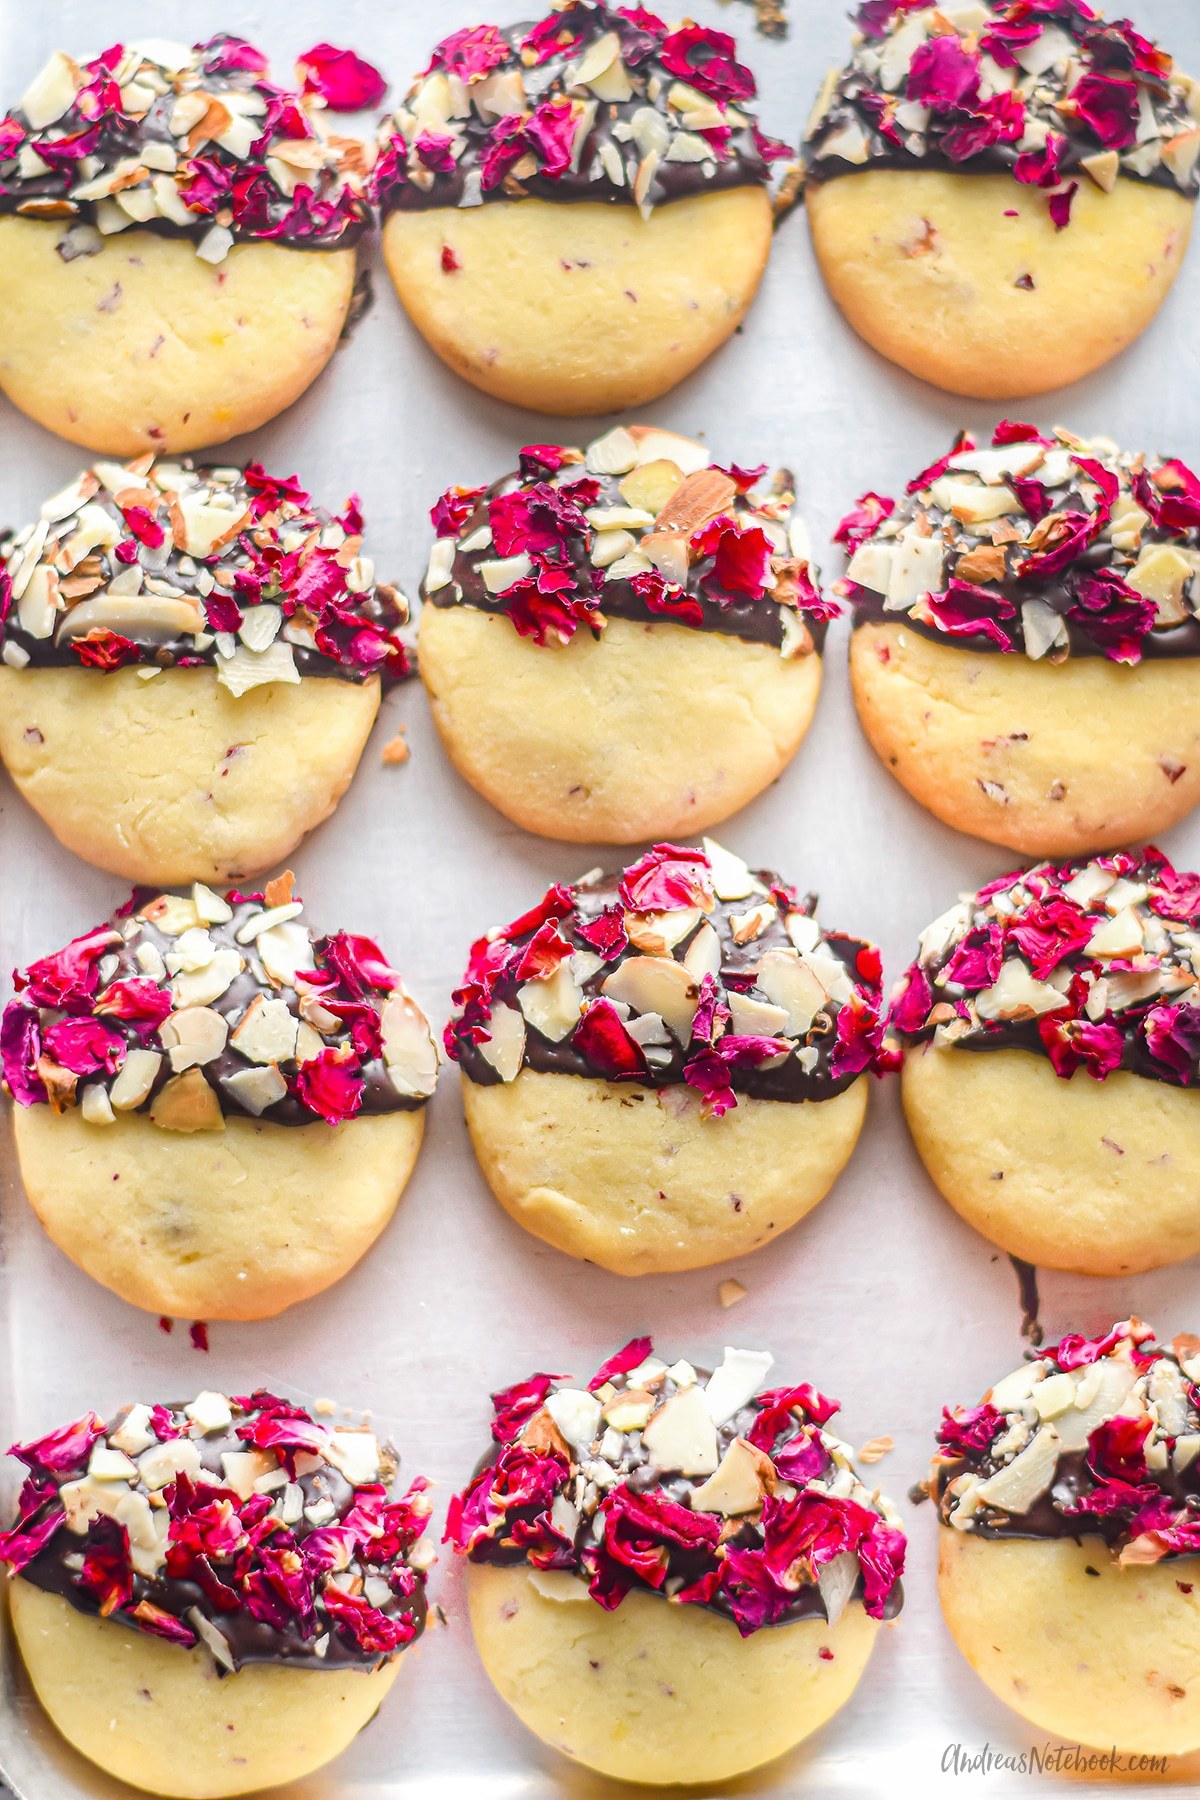 12 half dipped black and white cookies - vanilla shortbread cookies with chocolate and edible rose petals and almonds